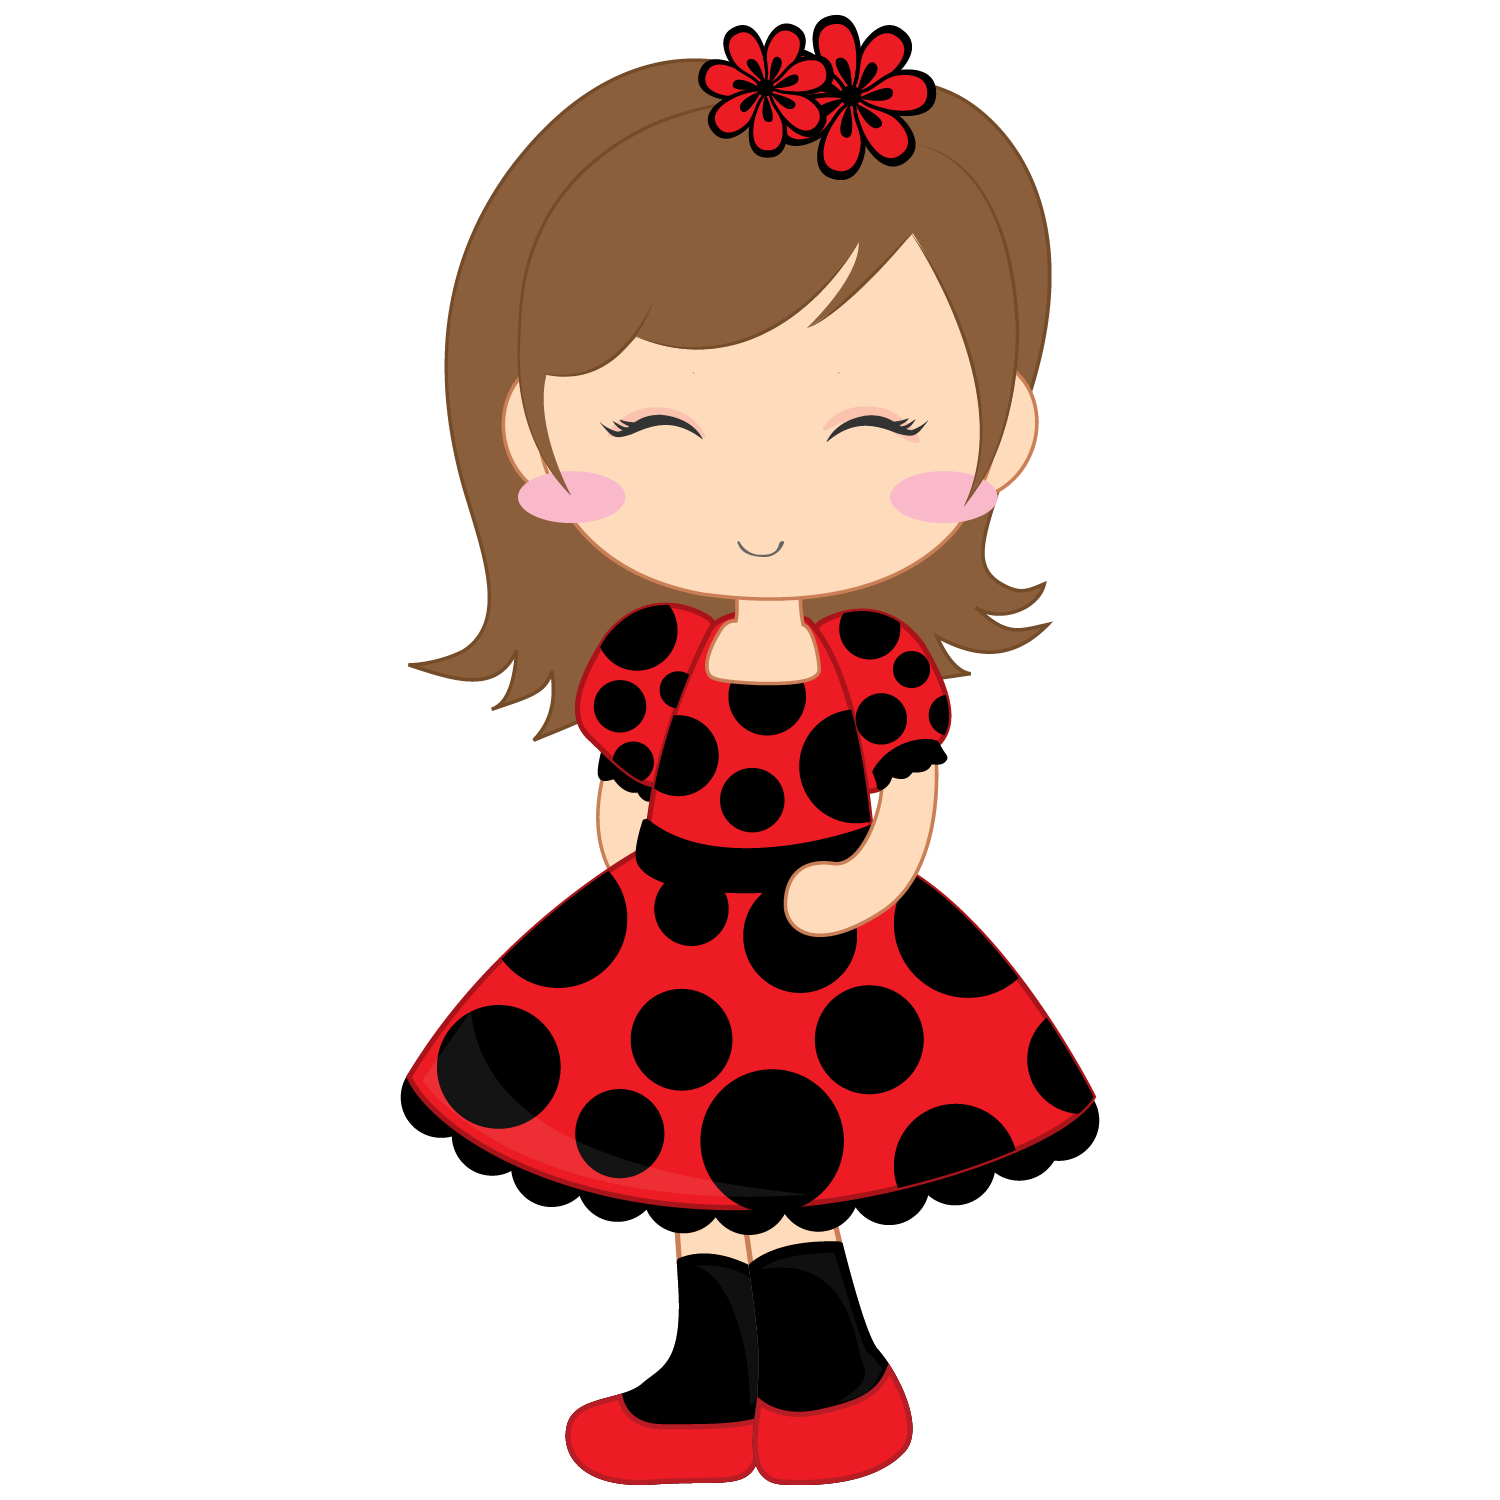 See clipart nice. Baby girl ladybug cartoon